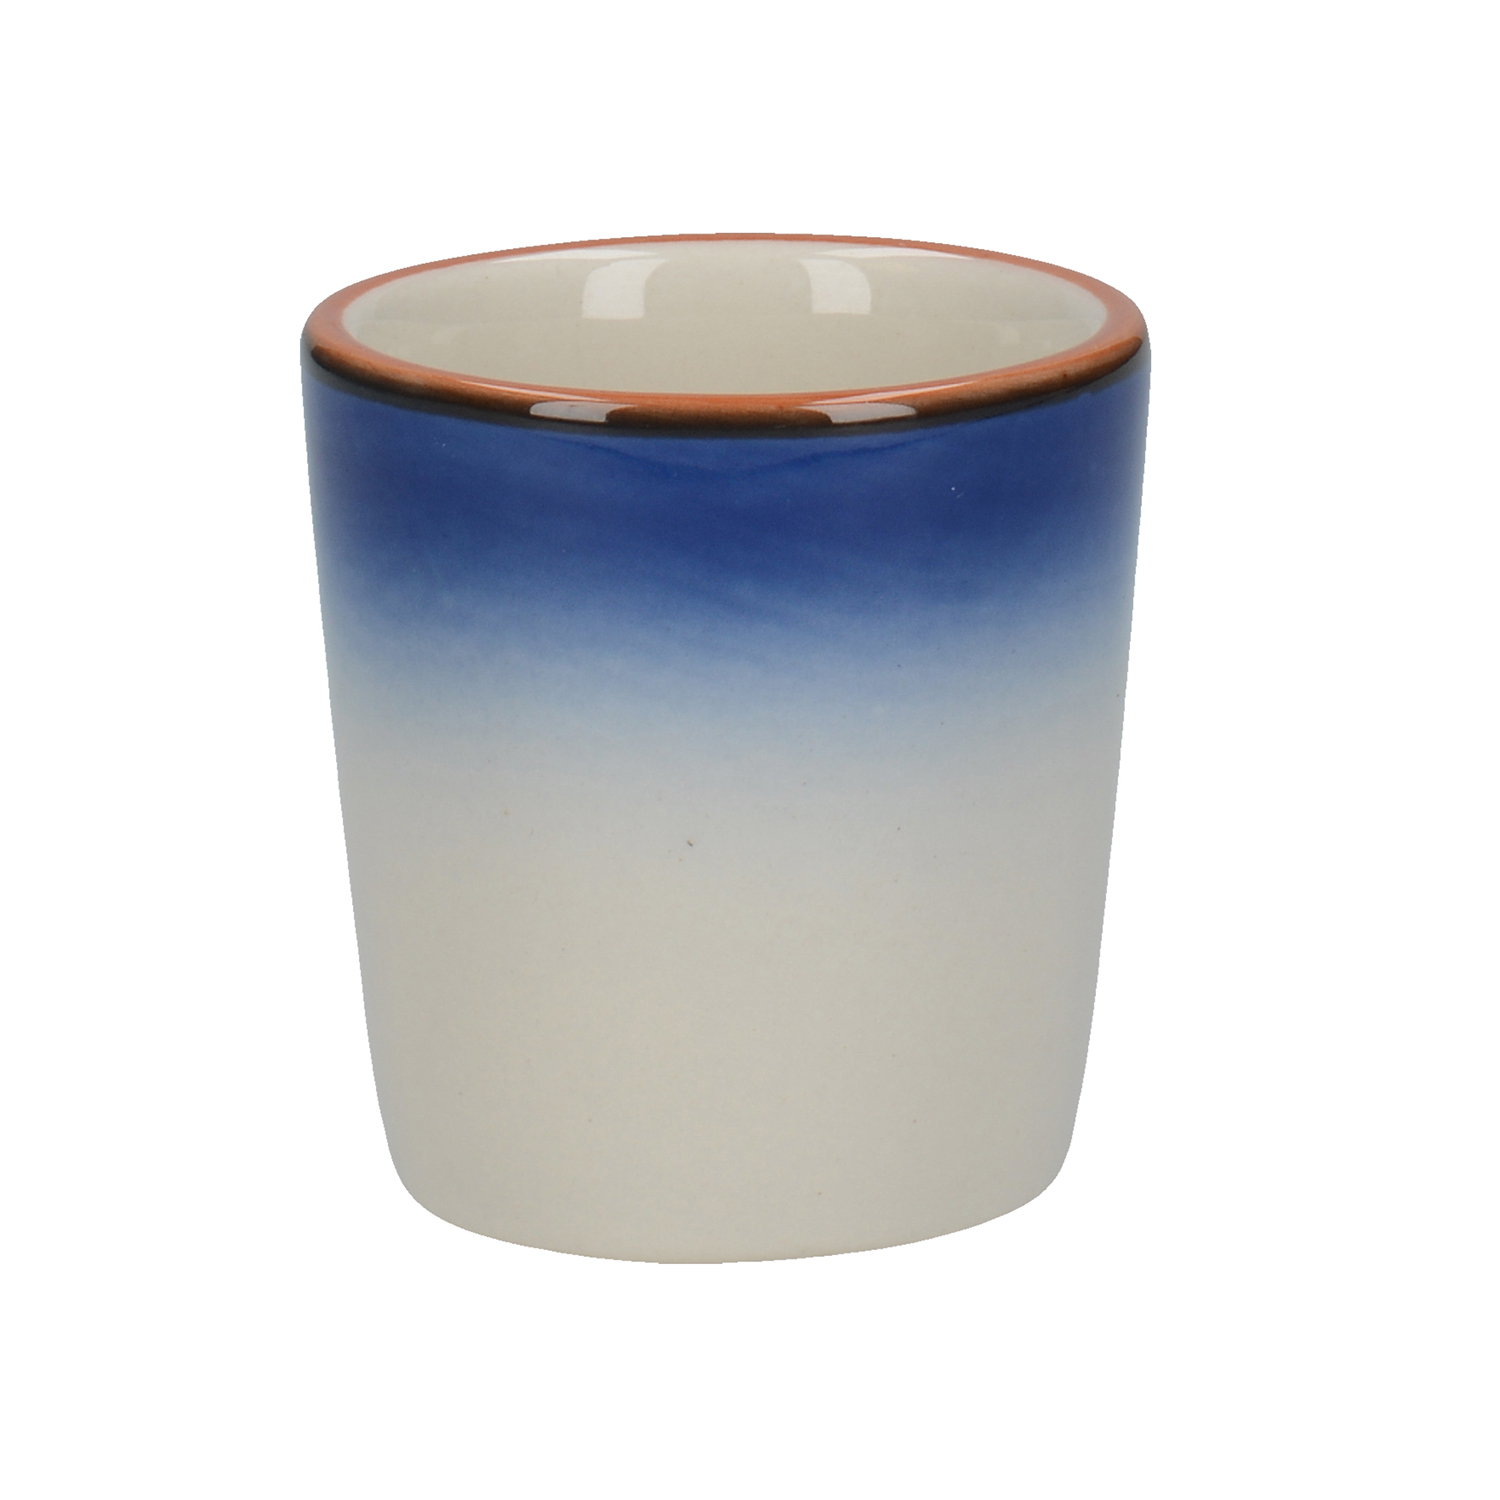 Image of Drift Egg Cup, Ombre Blue